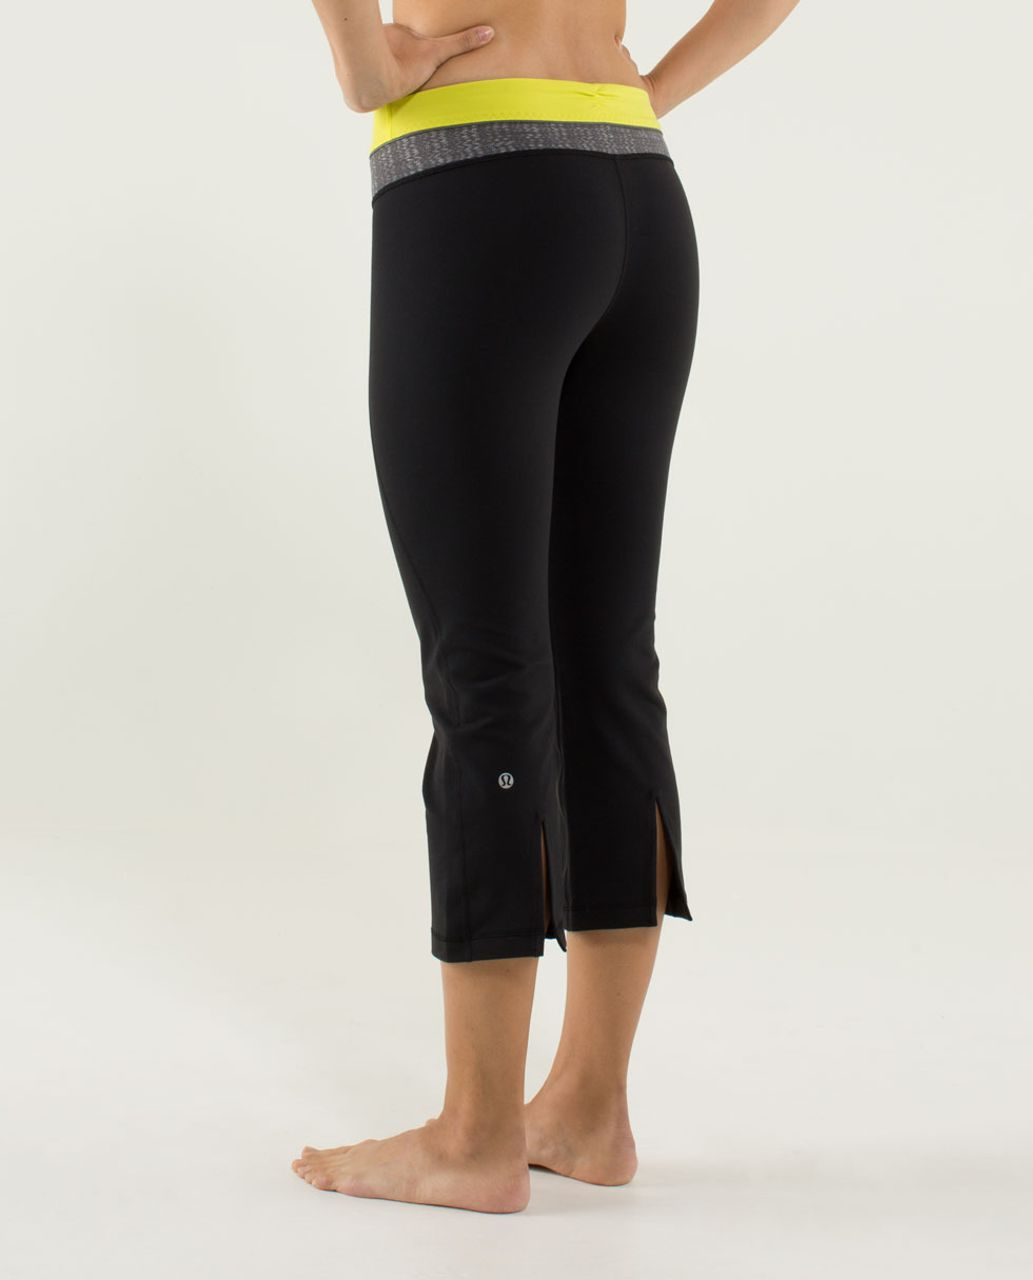 Lululemon Gather & Crow Crop - Black / Quilt 10 Fall 2013